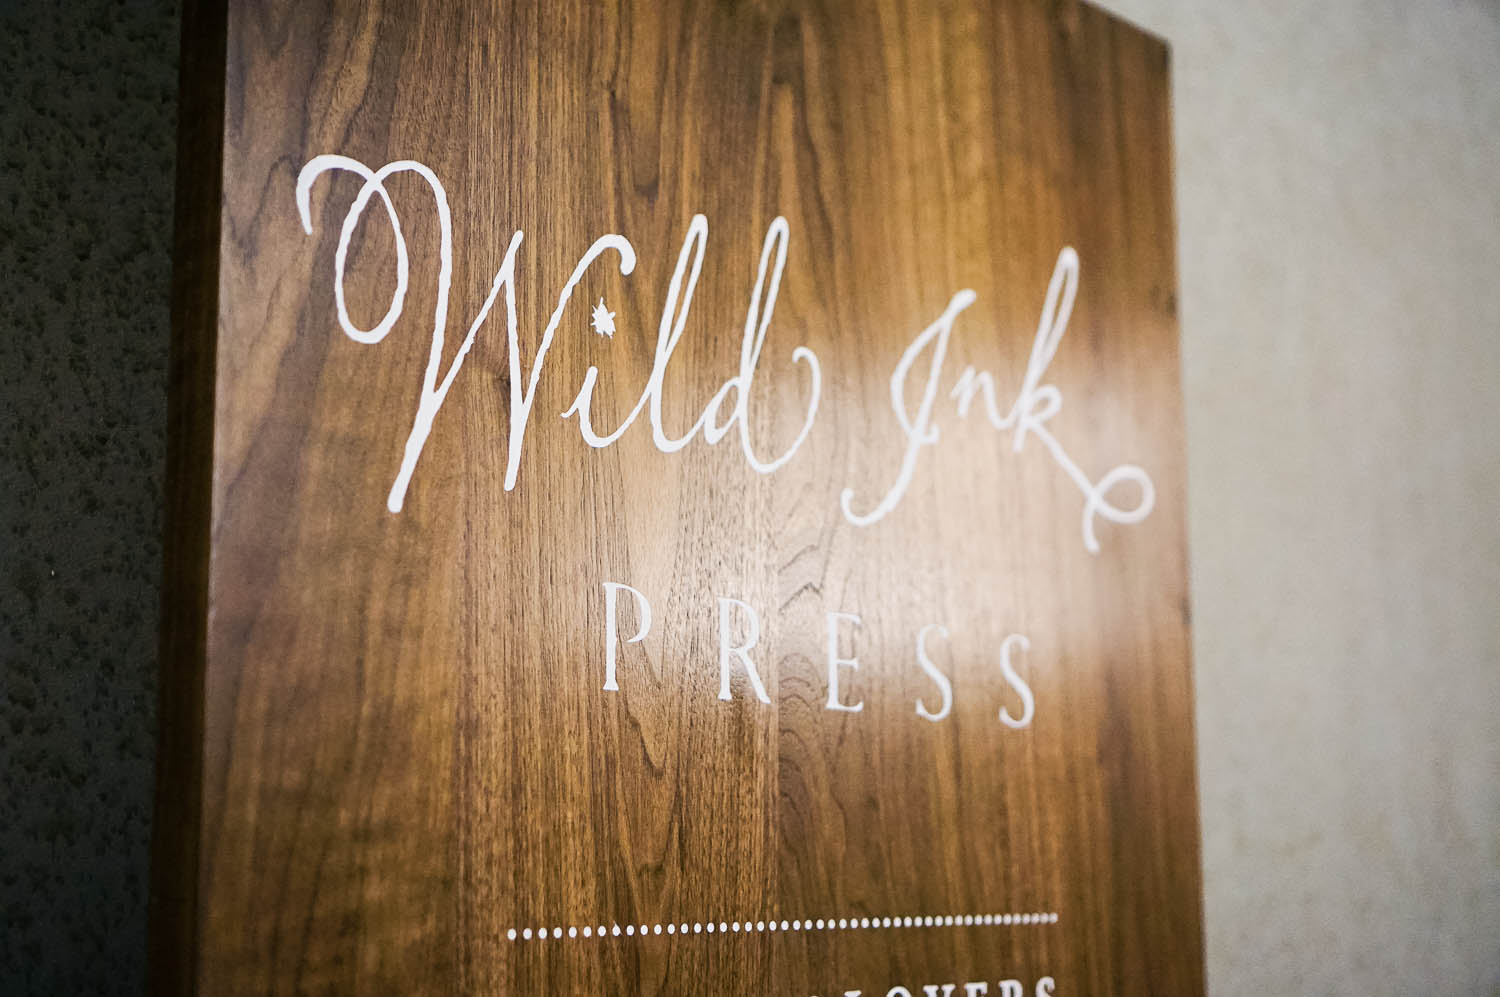 Wild Ink Press Wood Event Sign